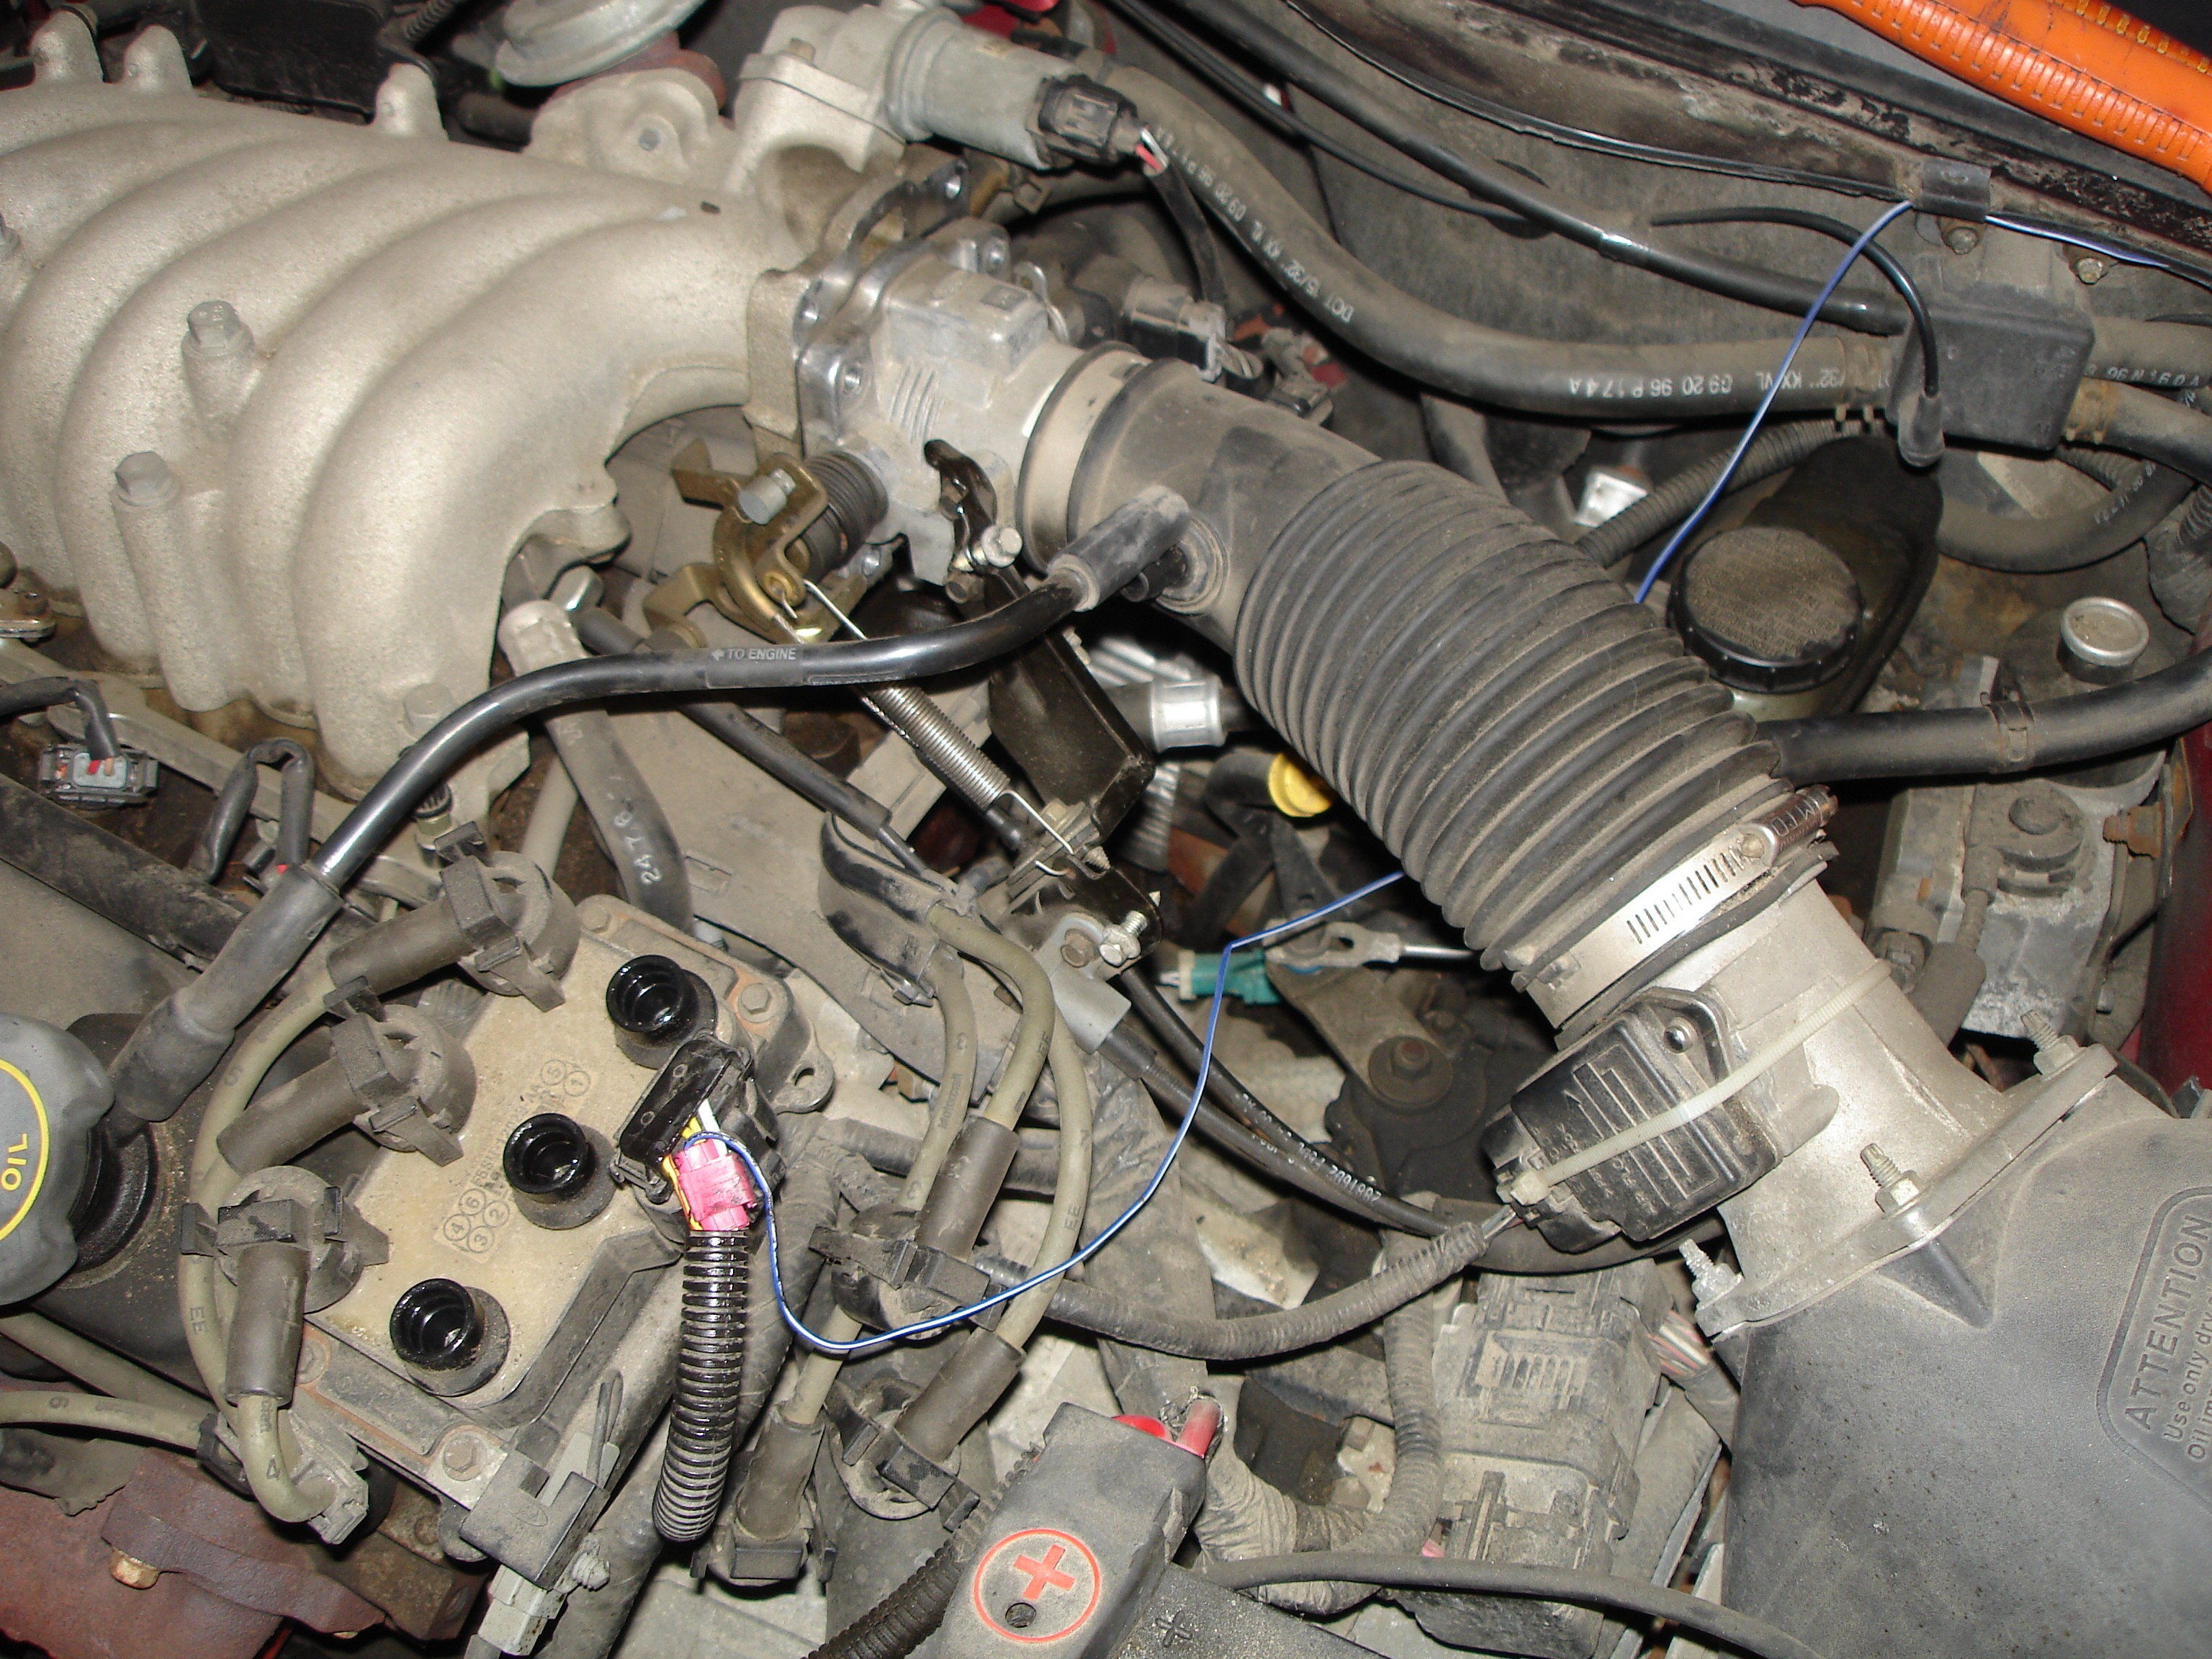 2000 Ford Windstar Engine Hose Diagram Wiring Library Taurus Fuel Line 2003 Replace A Camshaft Position Sensor 1997